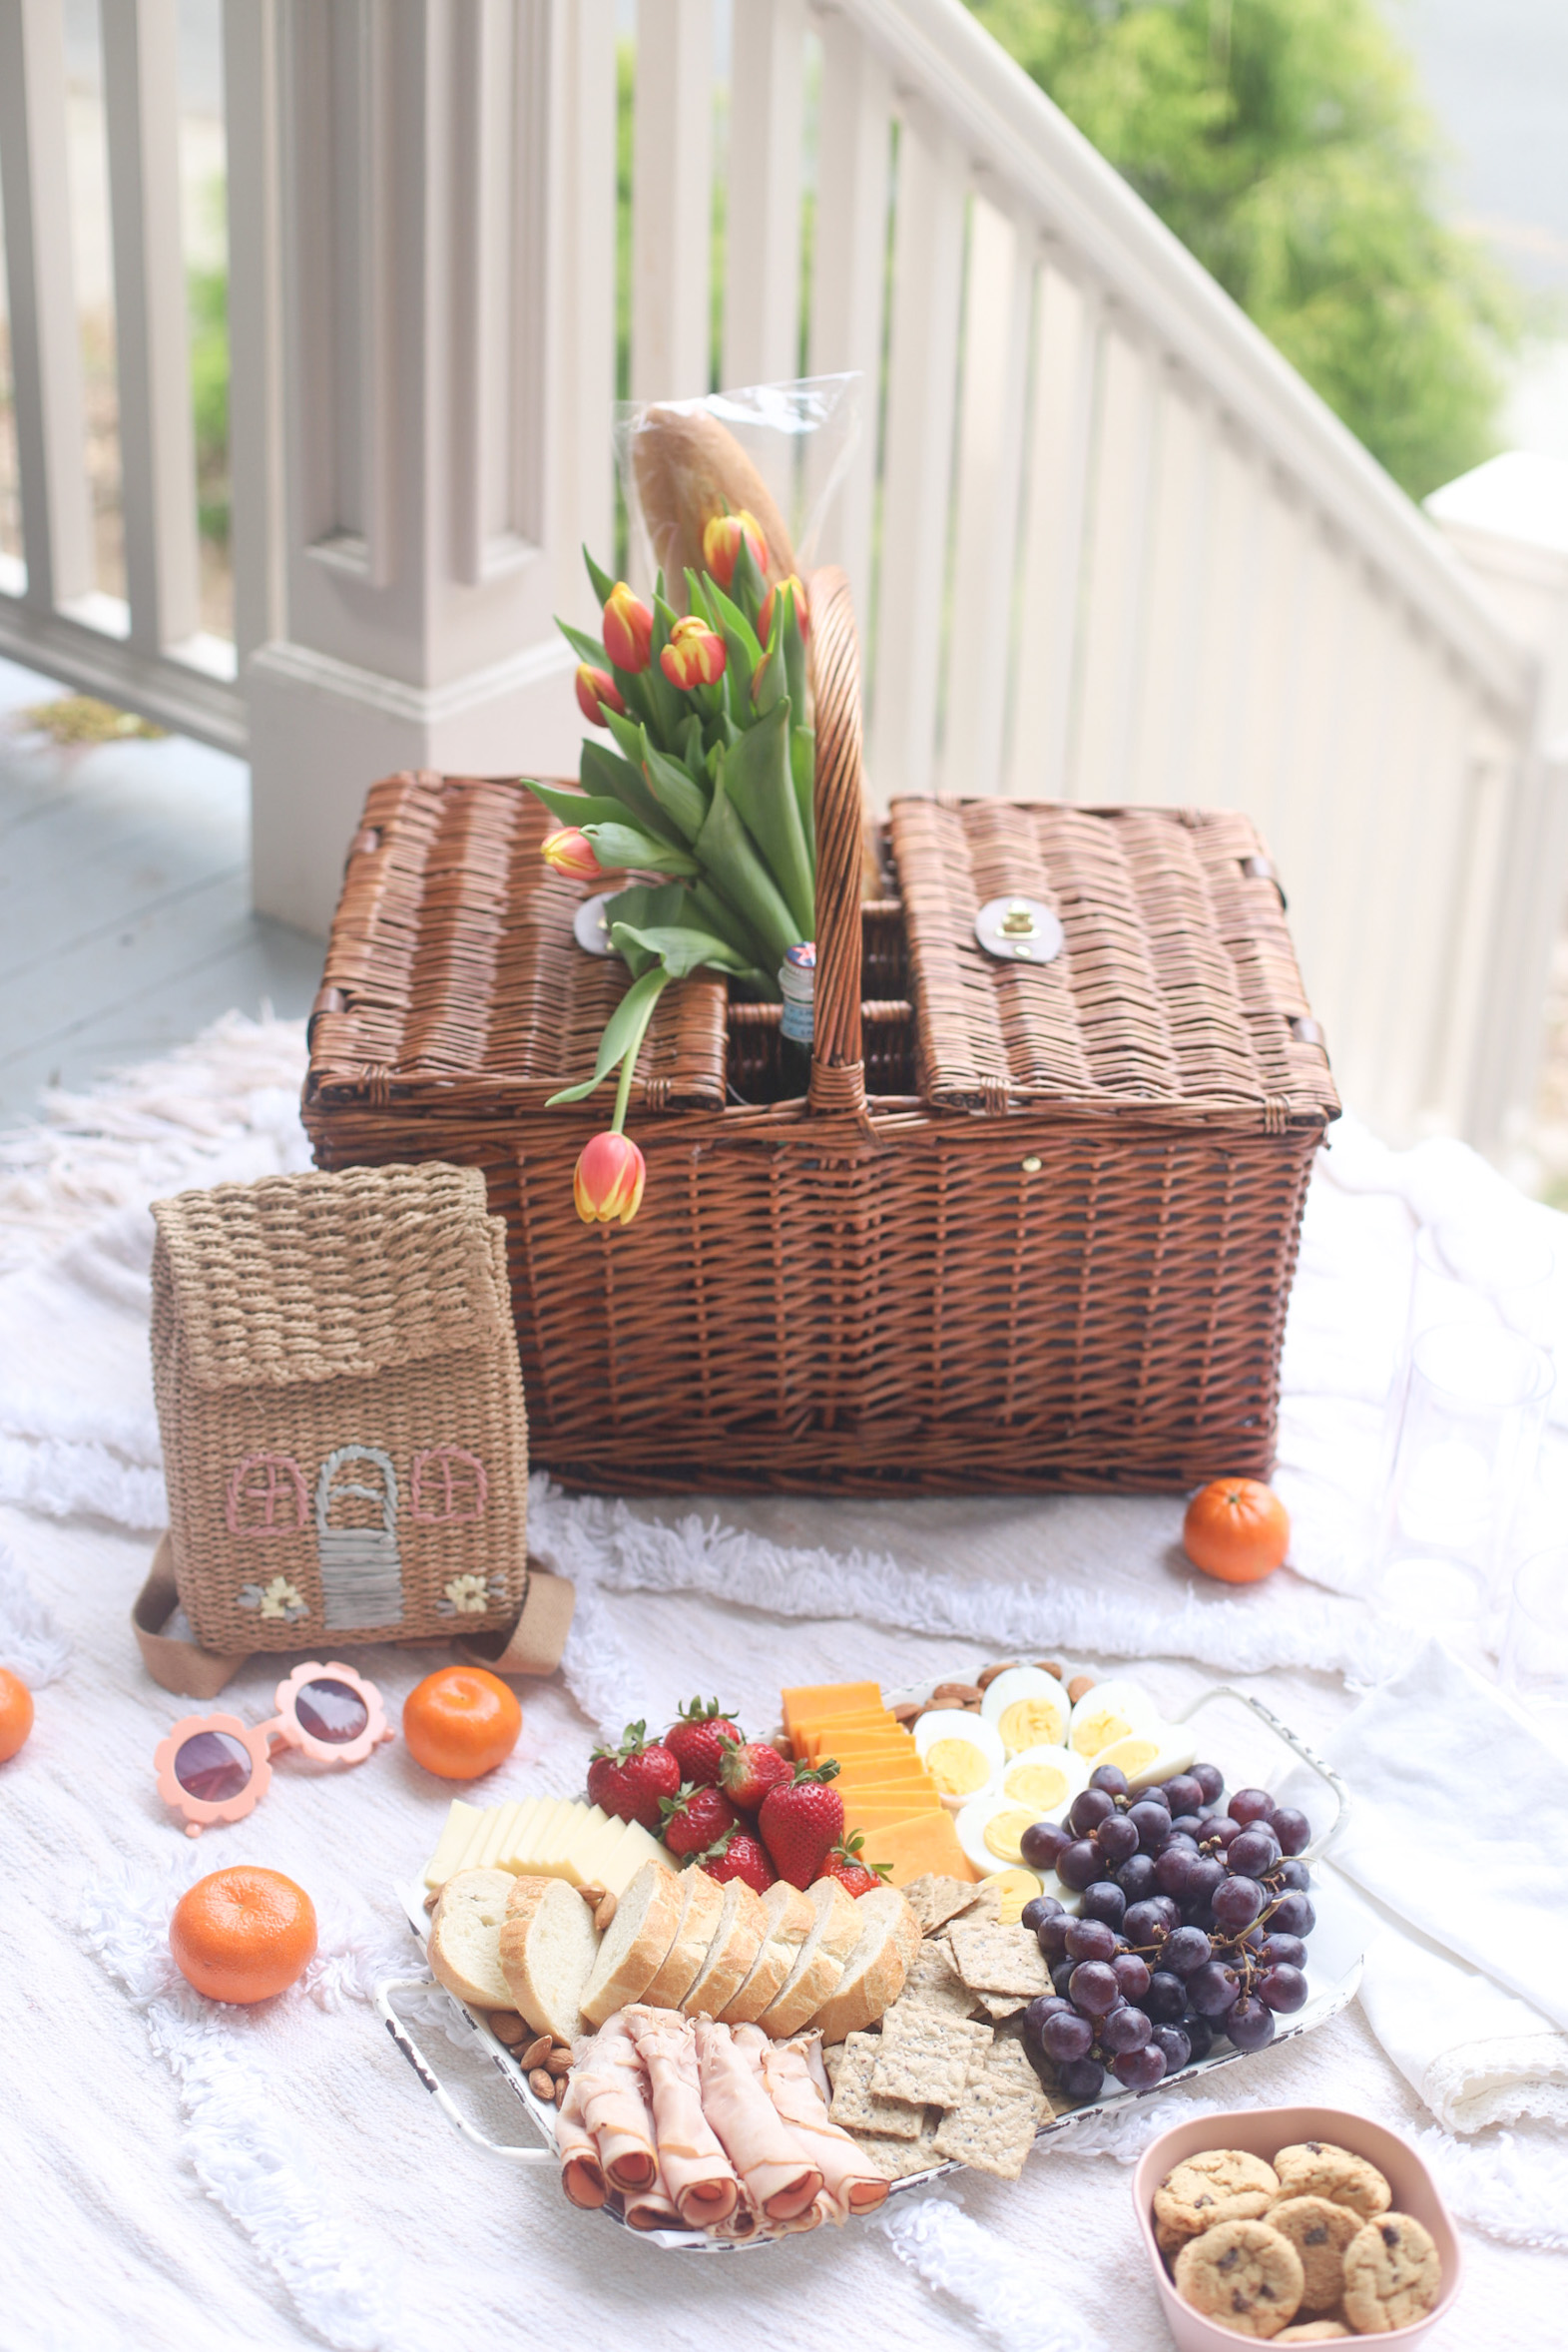 a picnic basket and a charcuterie board